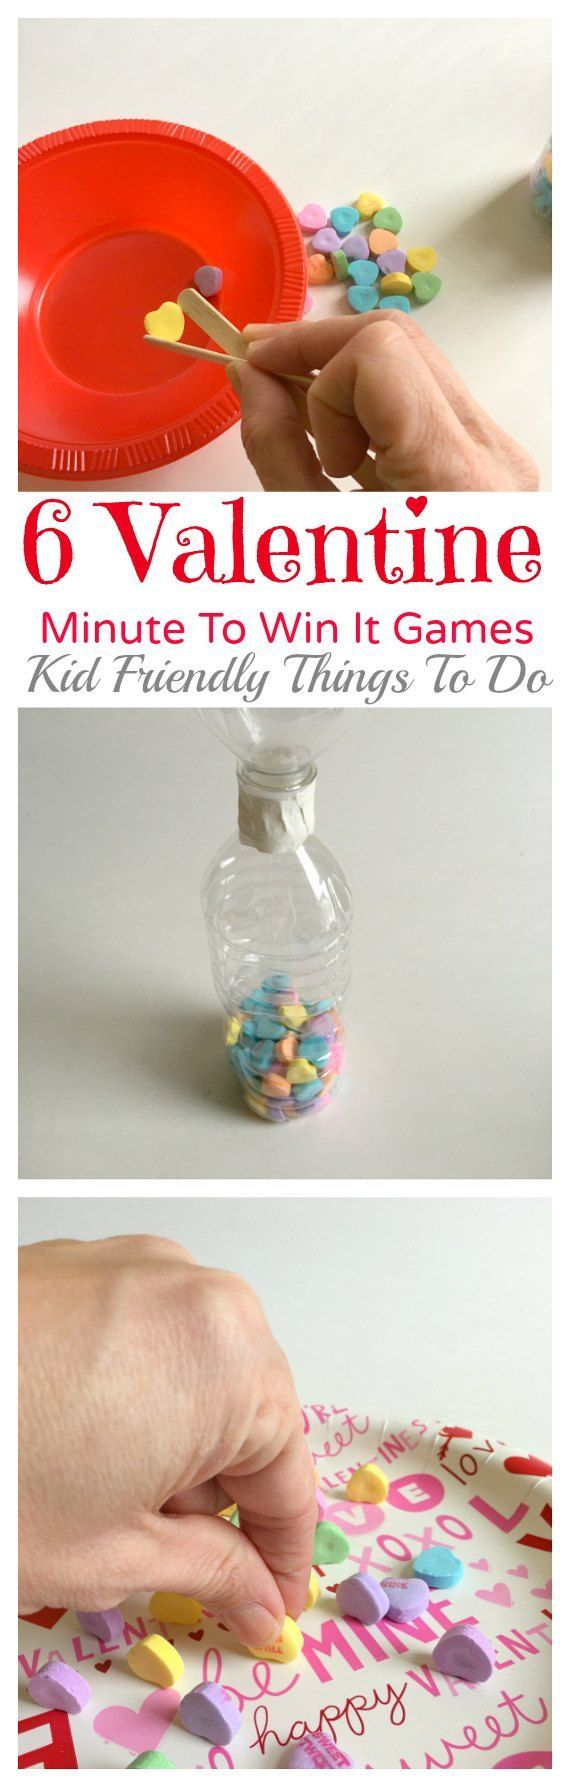 Our Minute To Win It Valentine's Day Party Games! - http://KidFriendlyThingsToDo.com